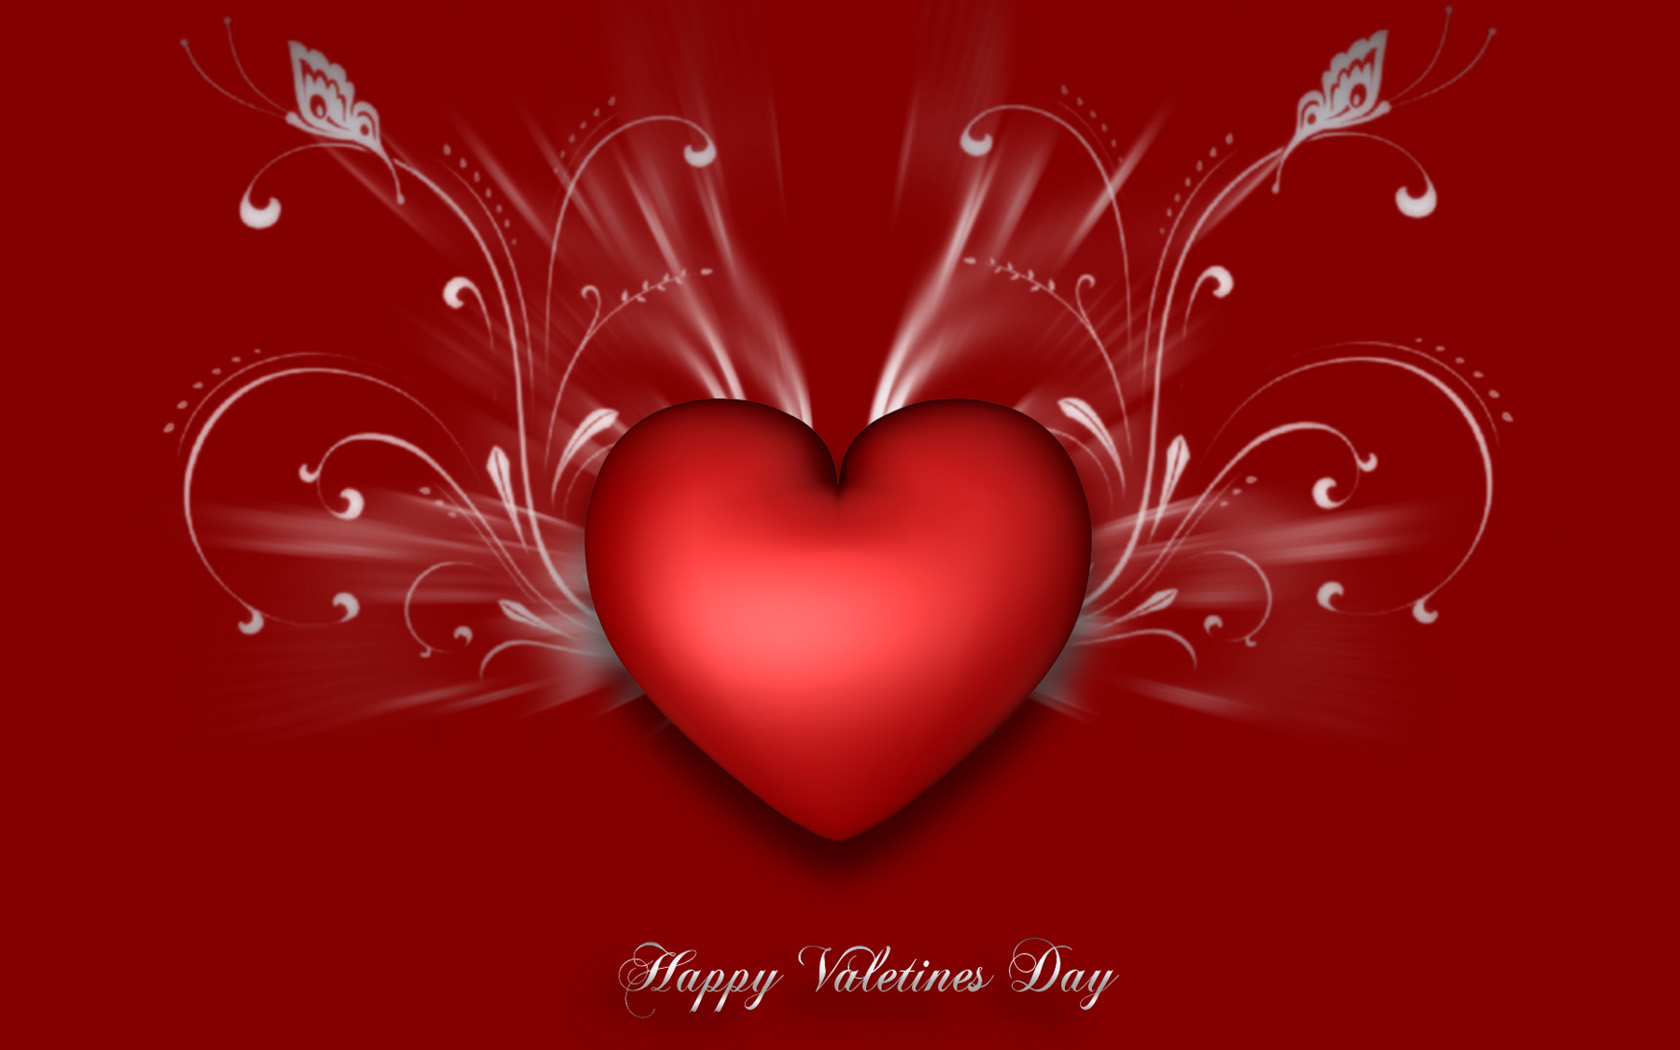 Valentine's Day Wallpapers & Pictures